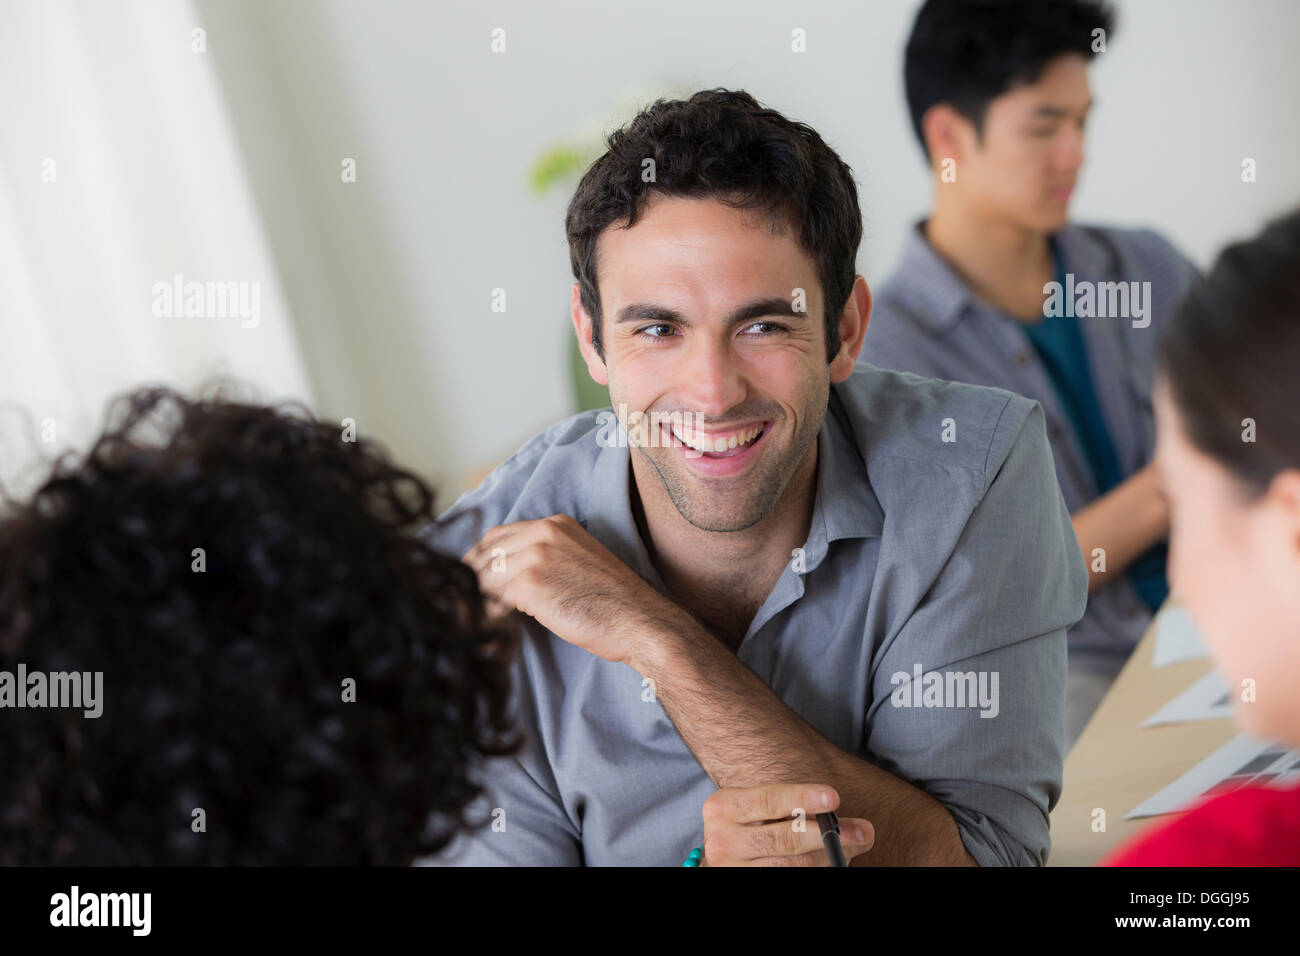 Office workers chatting - Stock Image